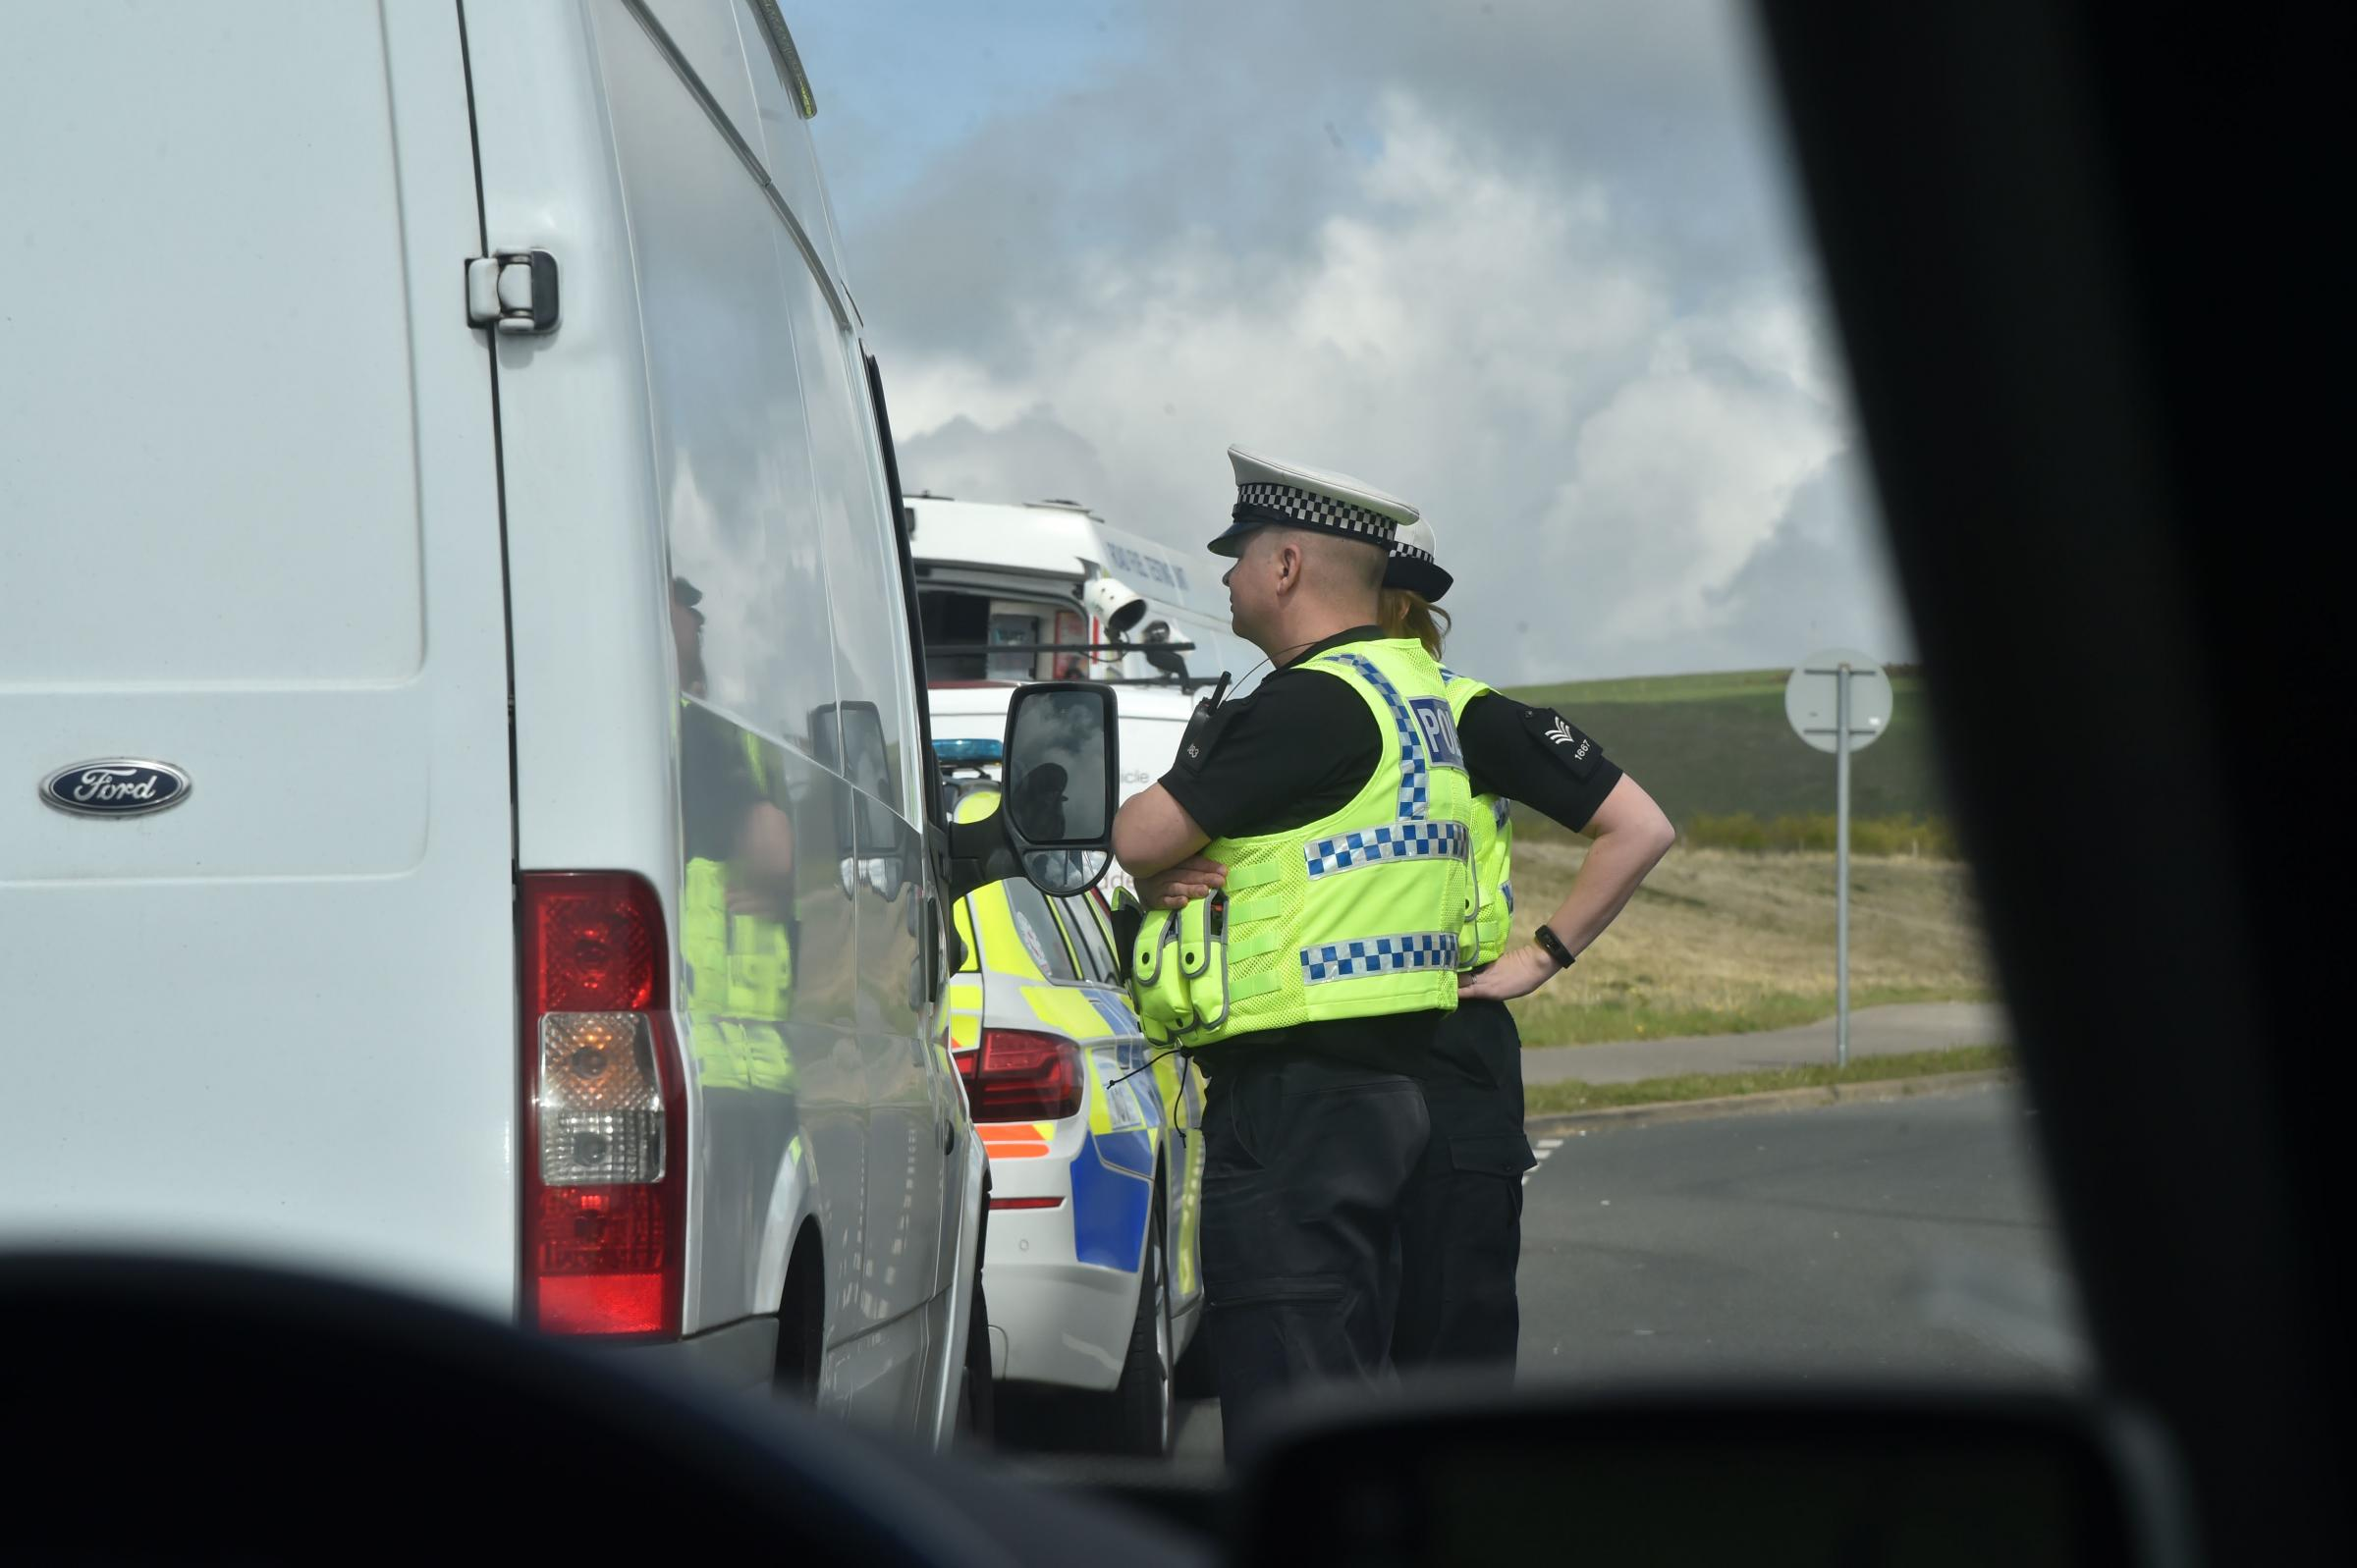 Residents tell Dorset Police they feel safe despite perceived crime rise